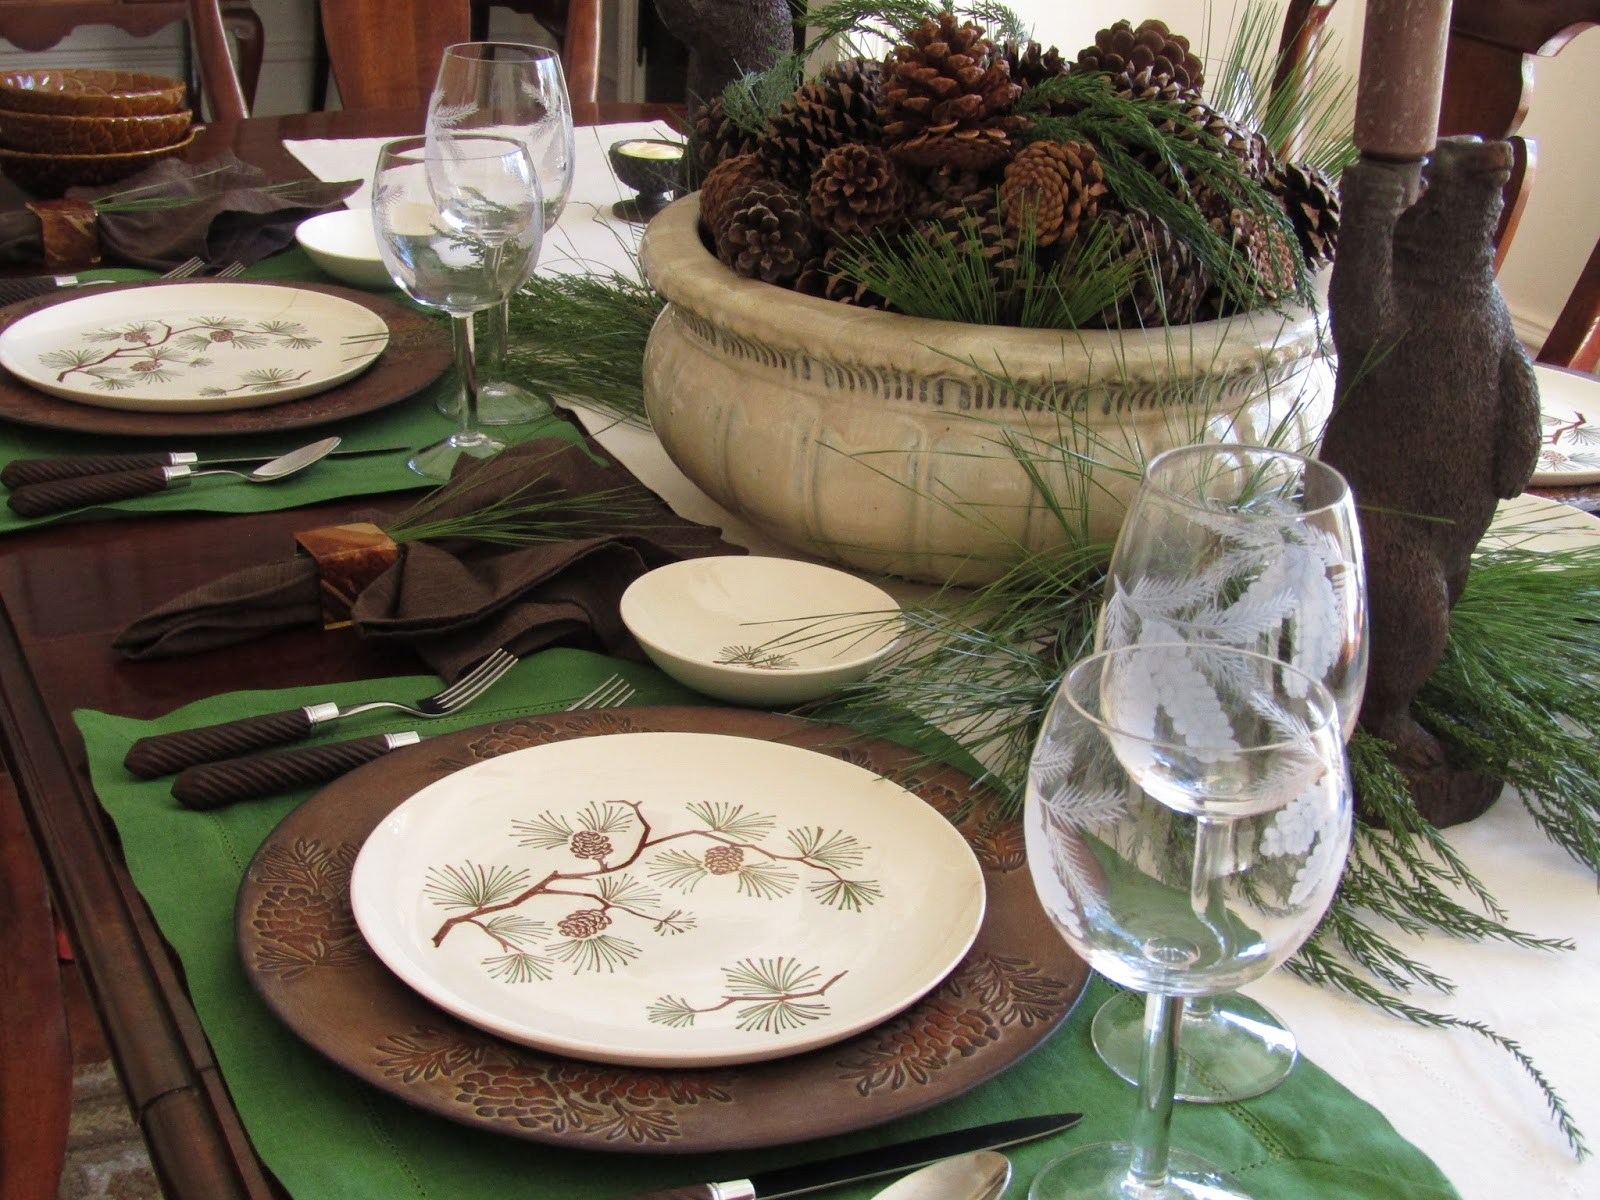 Retro Pine Cone Dishes & A Toile Tale: Retro Pine Cone Dishes